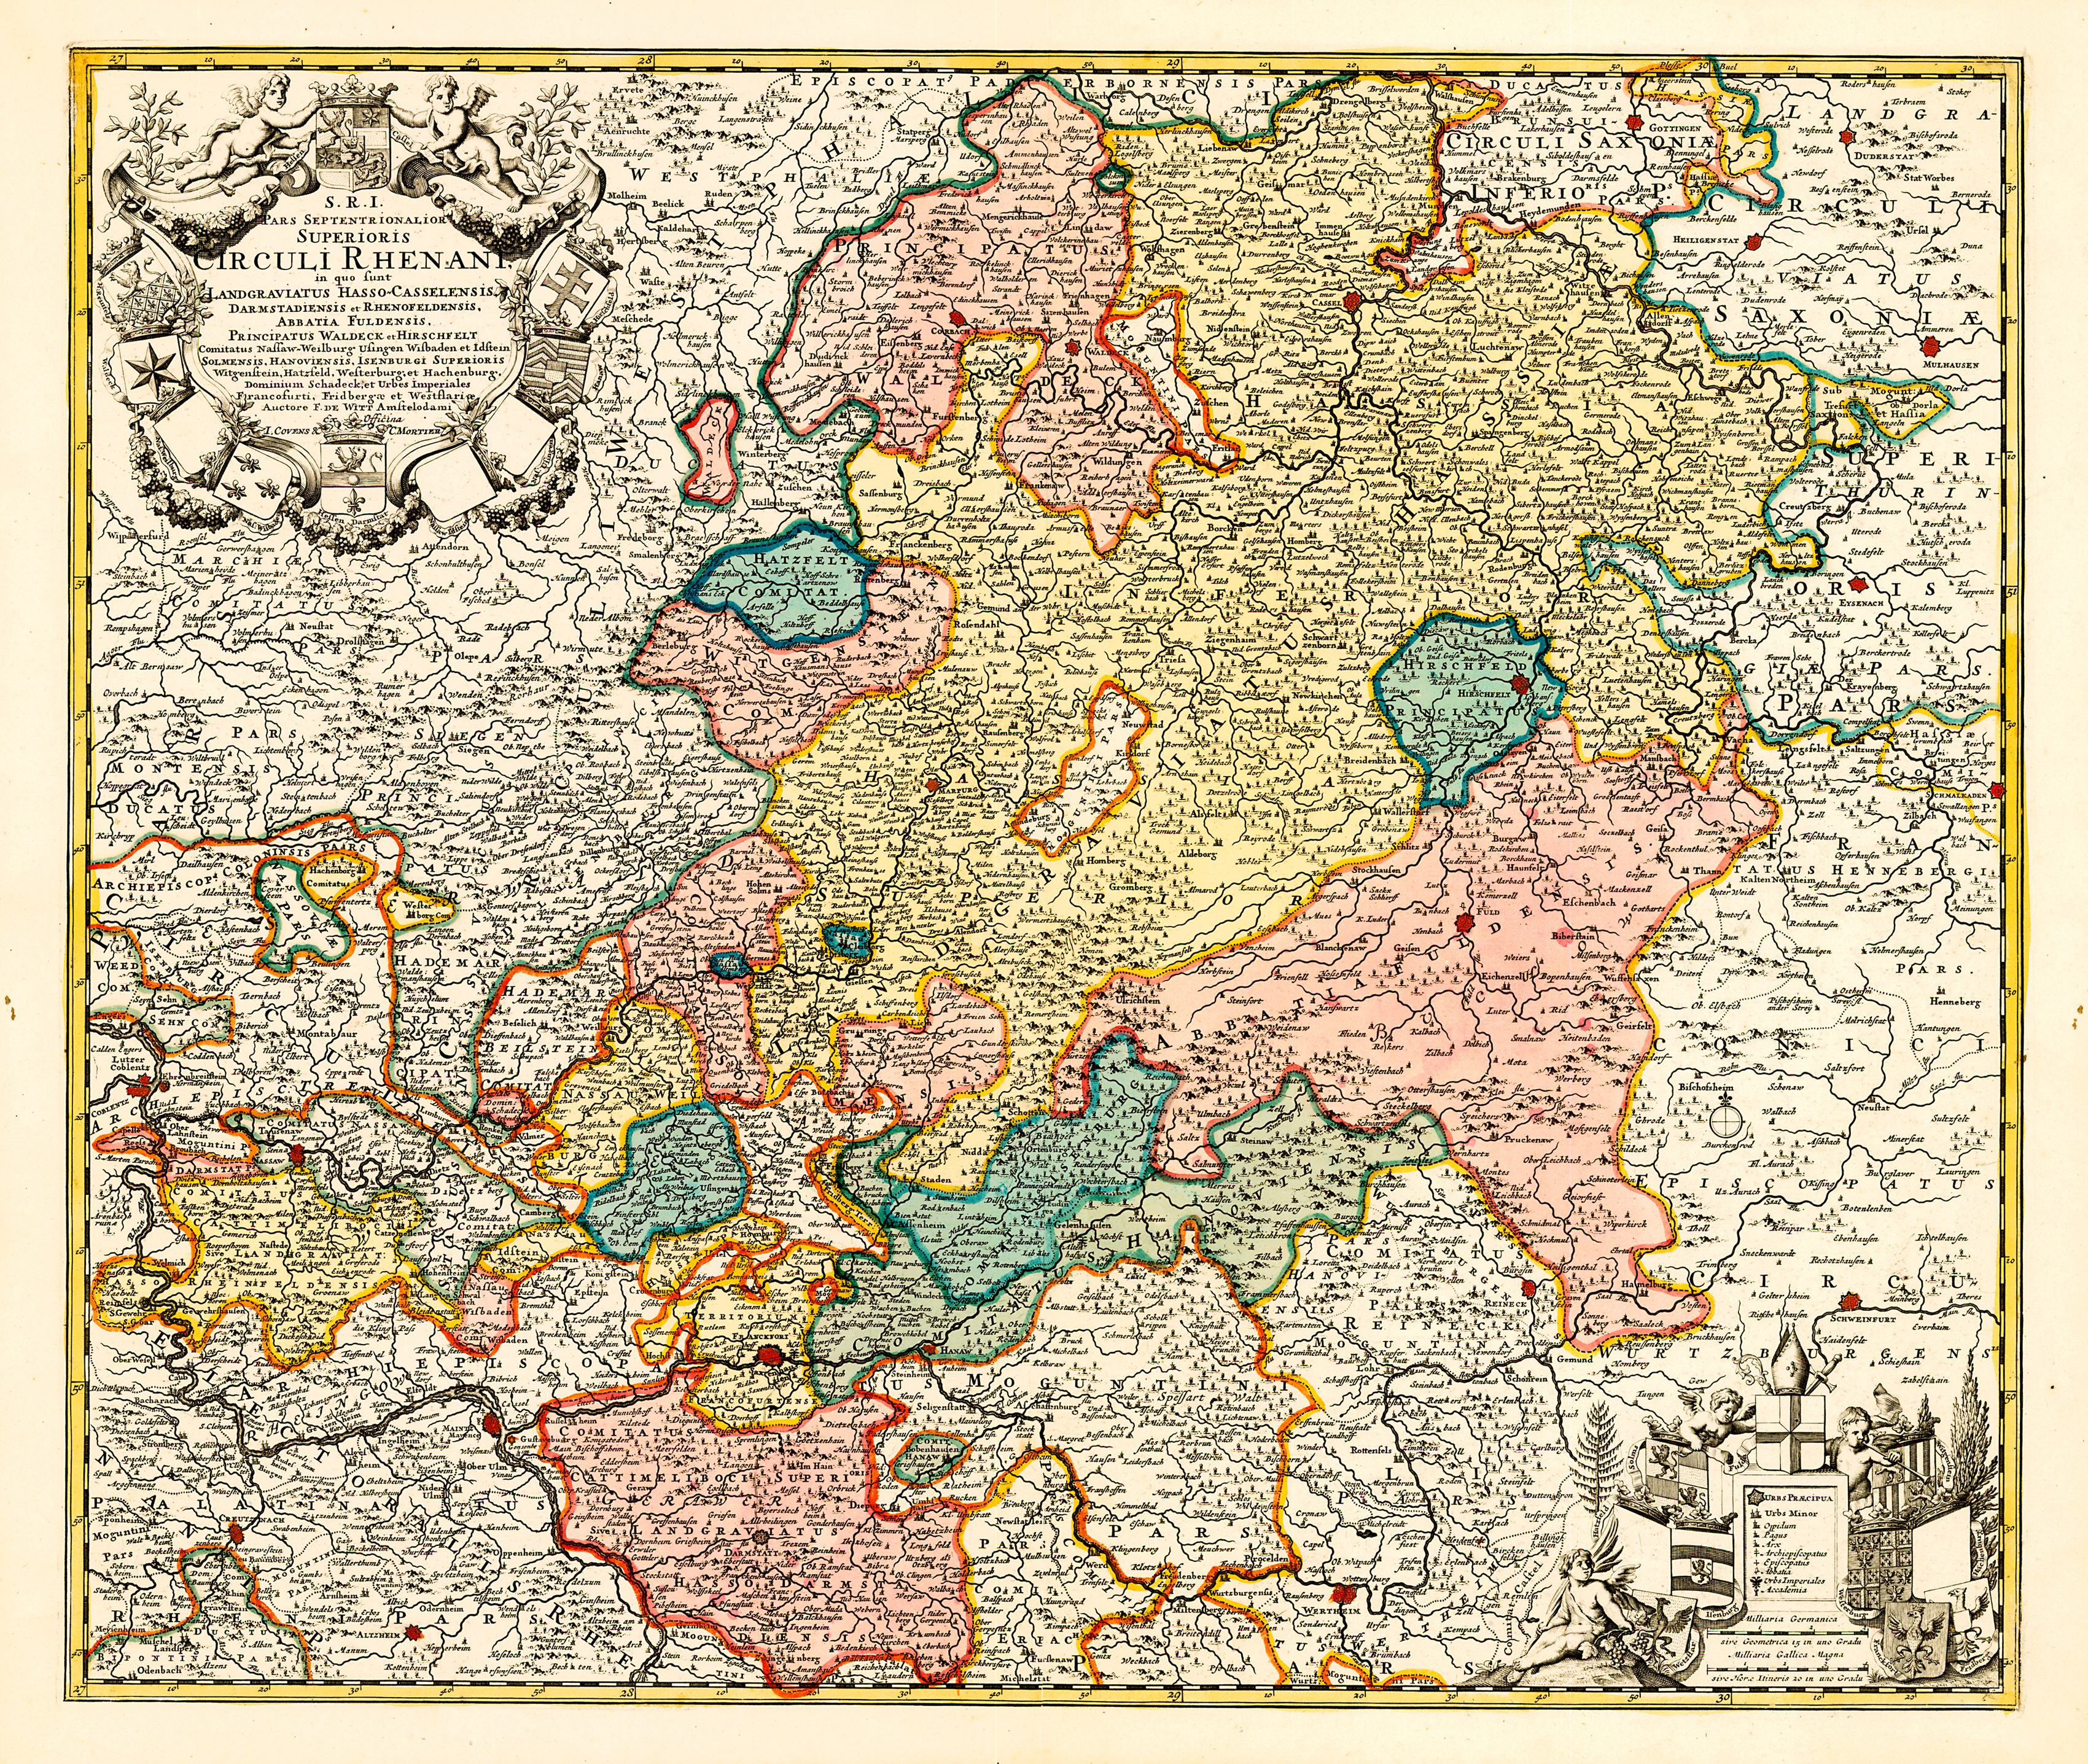 Map of the central German states in the 1760s. Source: Steve Schreiber.